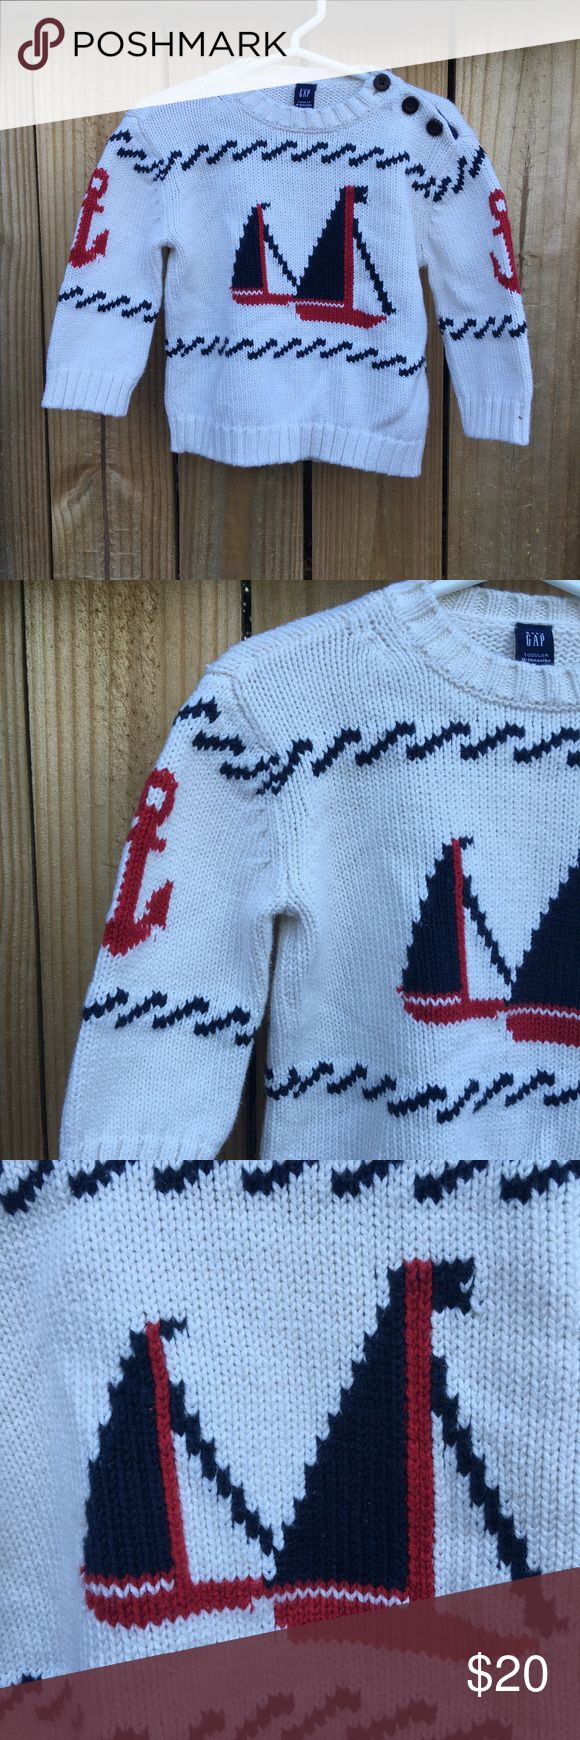 Baby Gap boys Anchor sweater sz: 12-18 months How adorable is this little piece? Anchor Baby Gap baby boy sweater sz: 12-18 months. Worn once, no flaws as pics reflect. Price firm ⚓️ GAP Shirts & Tops Sweaters